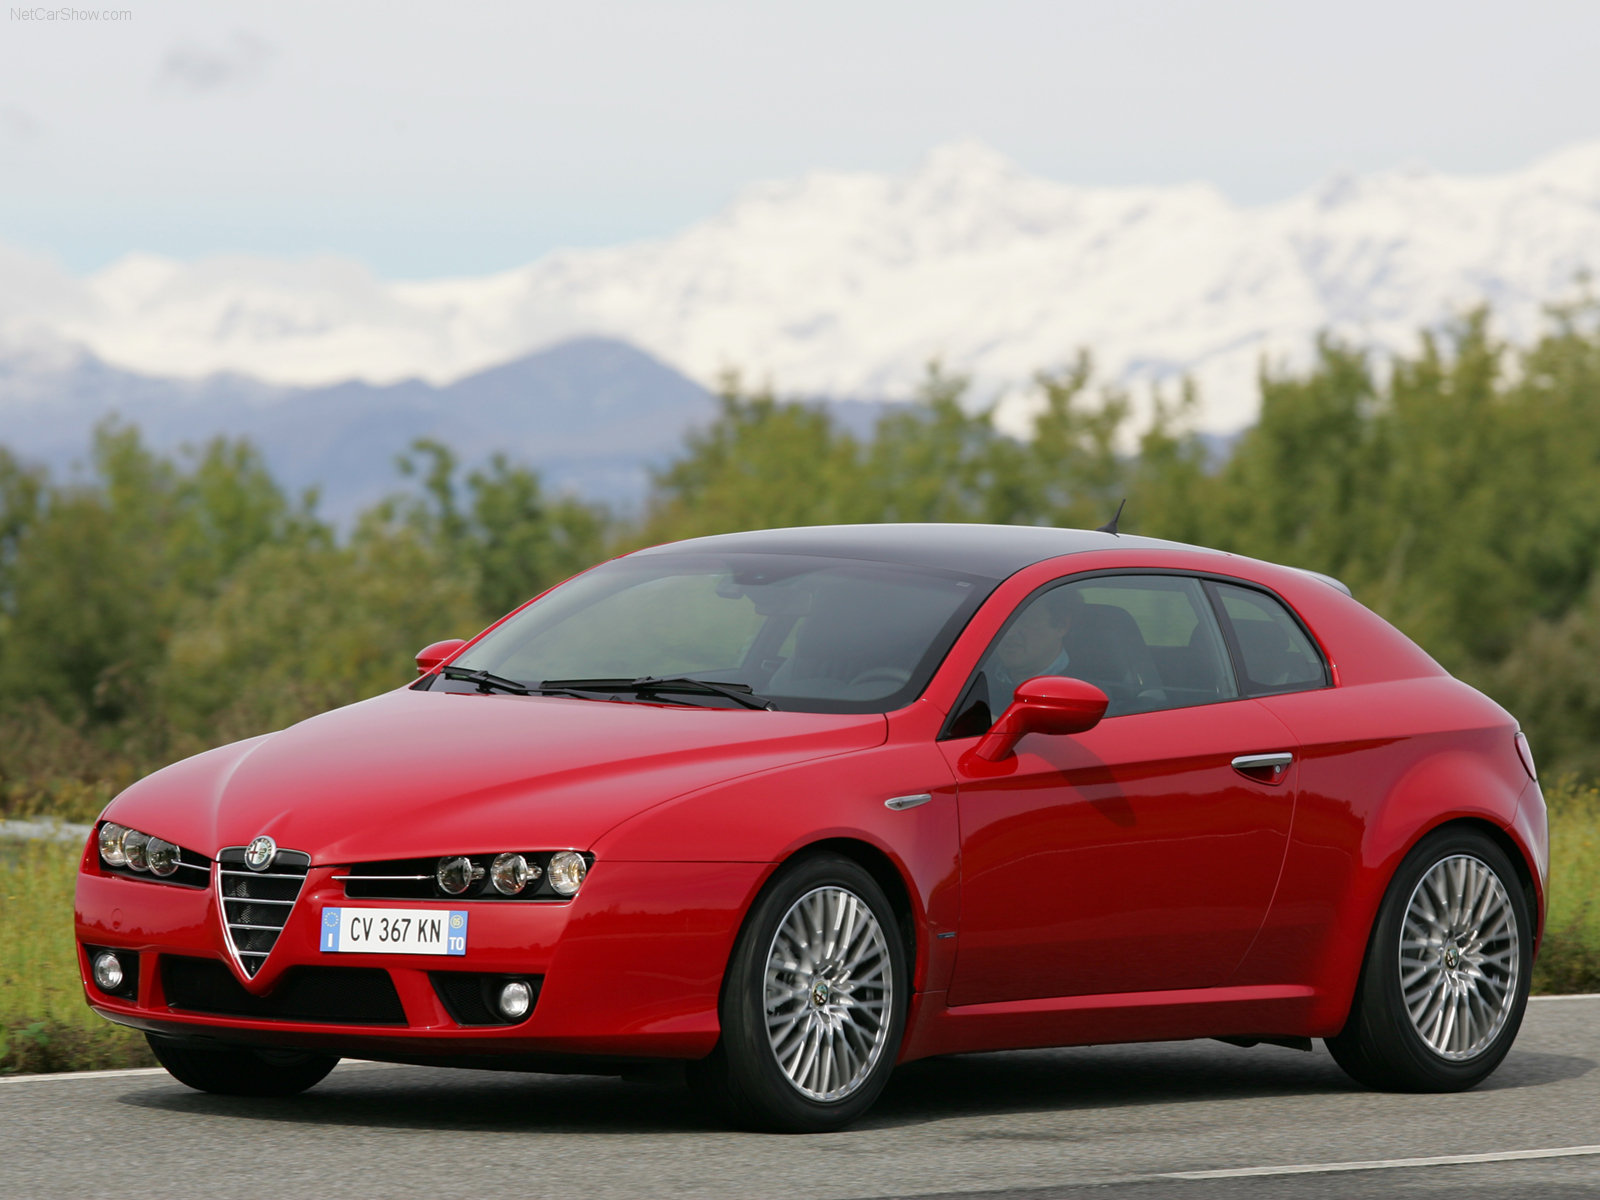 alfa romeo brera tuning images galleries with a bite. Black Bedroom Furniture Sets. Home Design Ideas